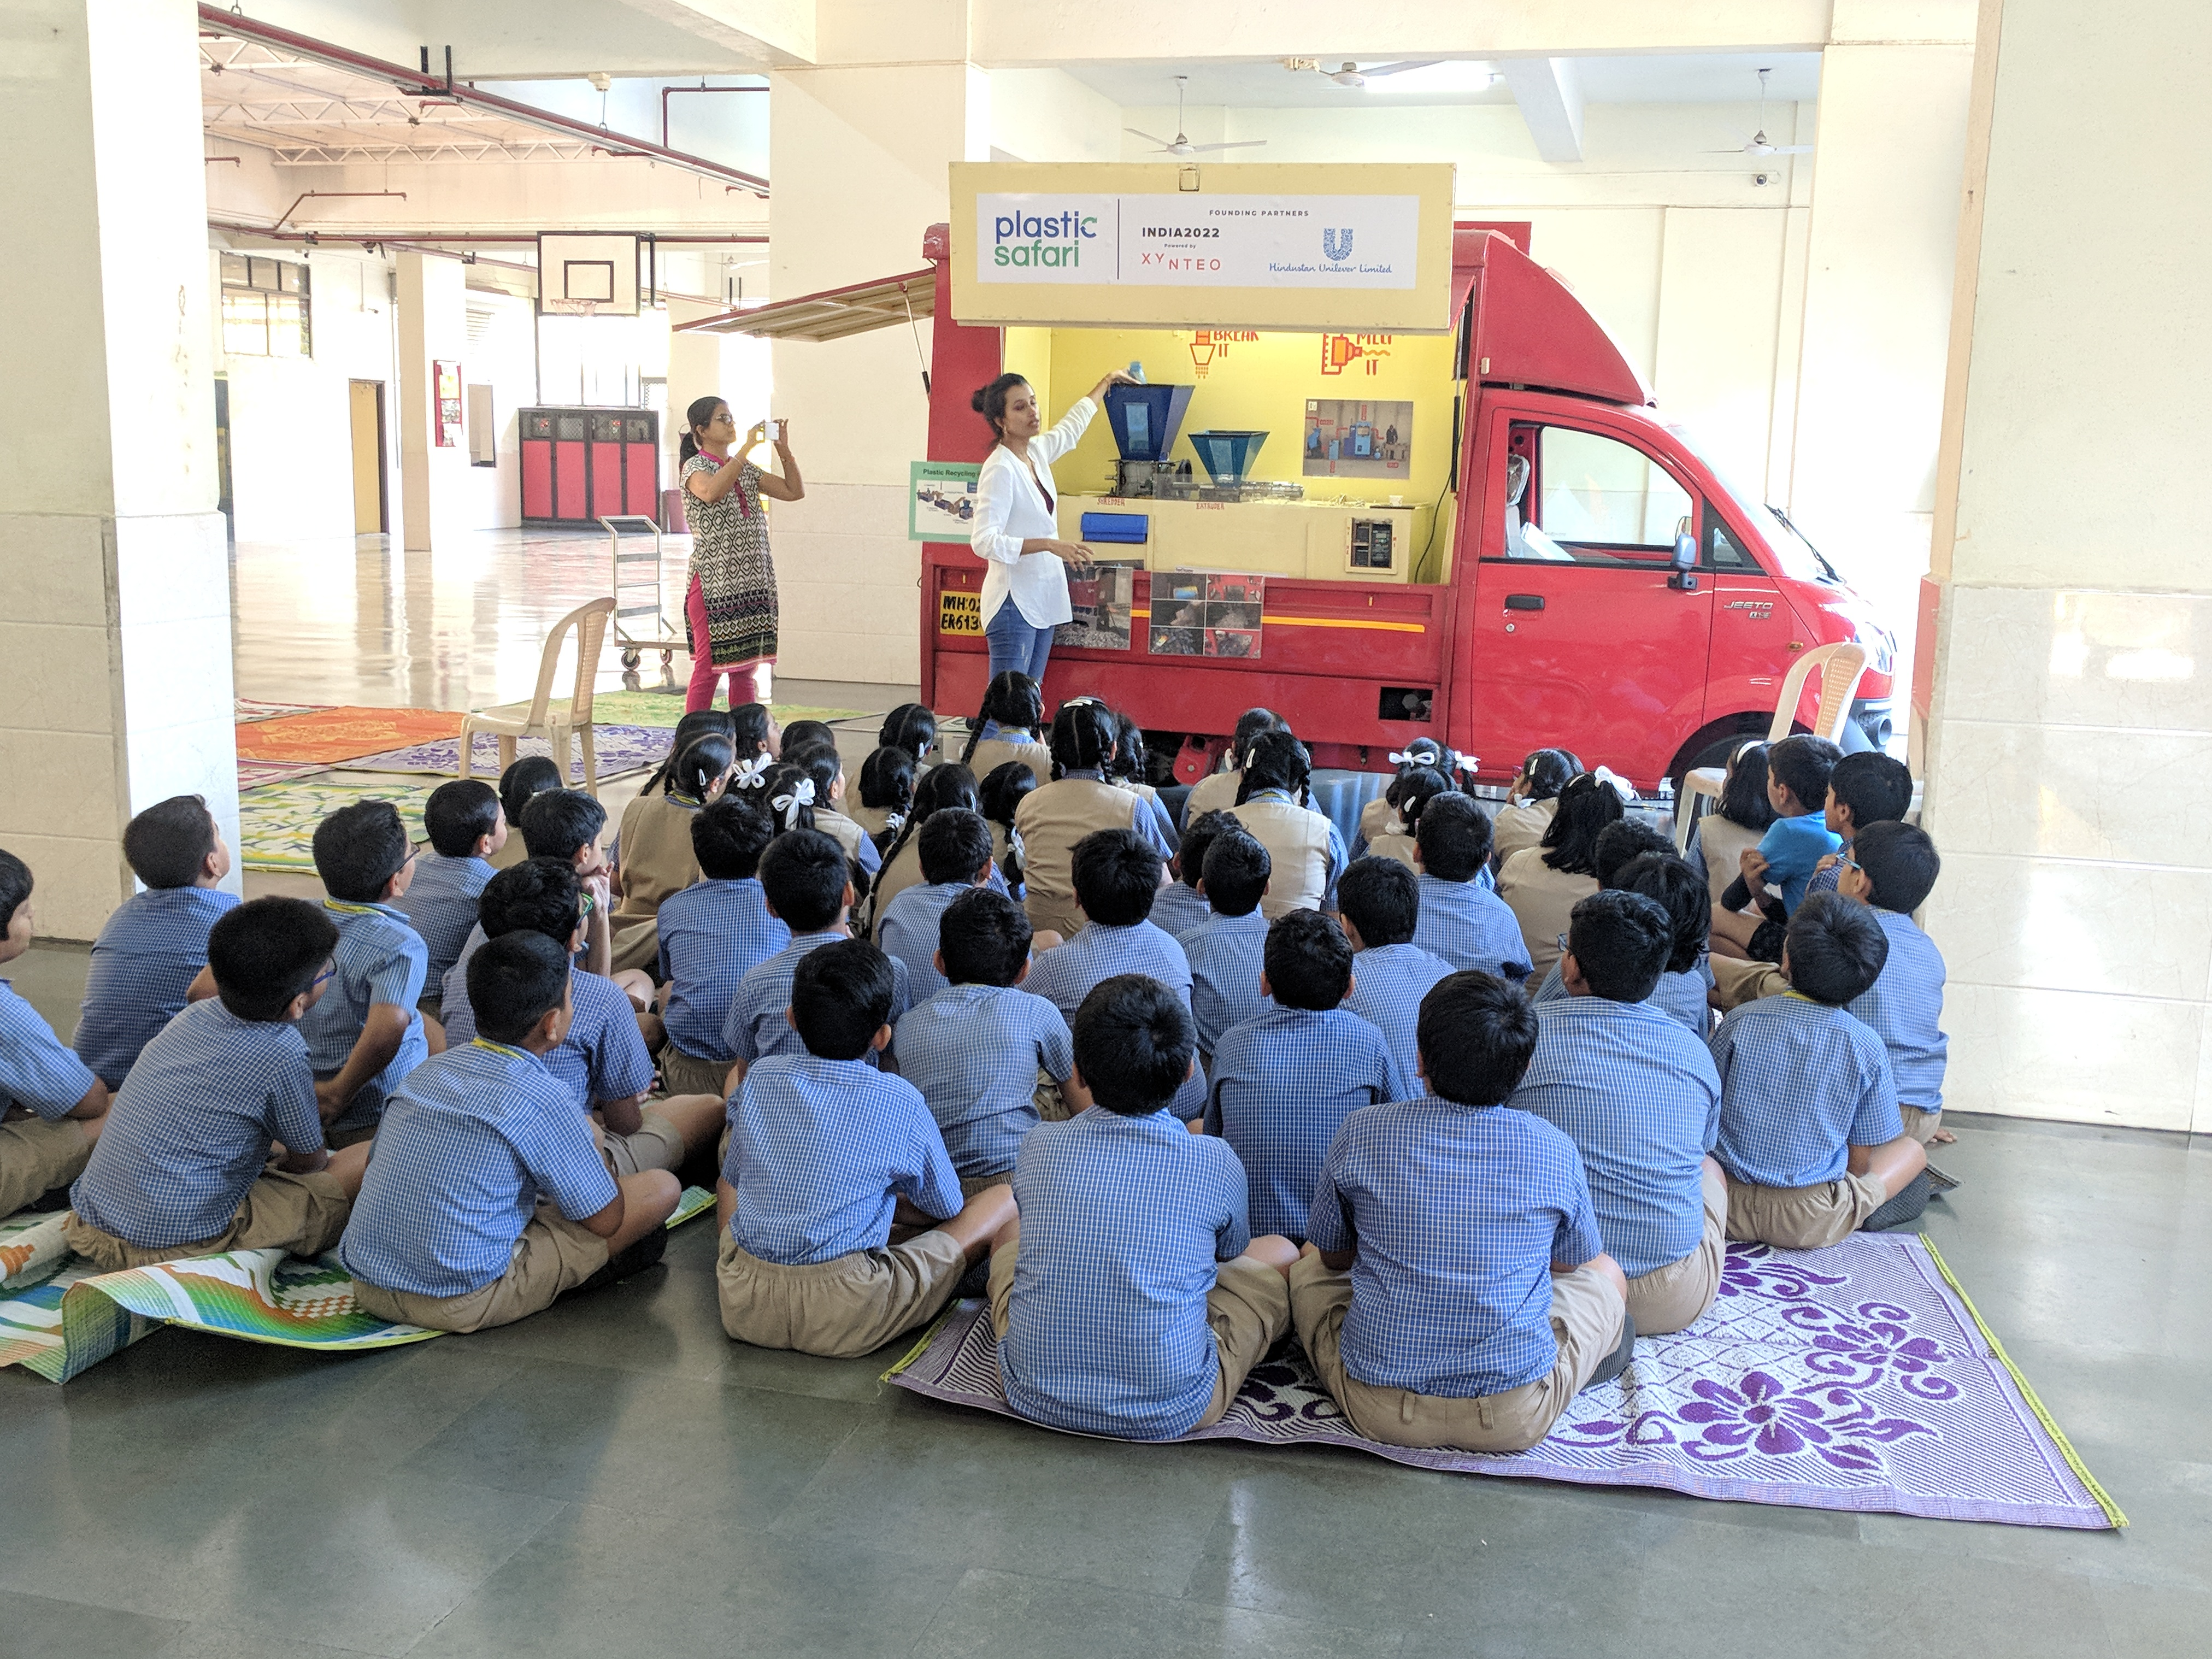 Waste No More aims to educate children on waste management.